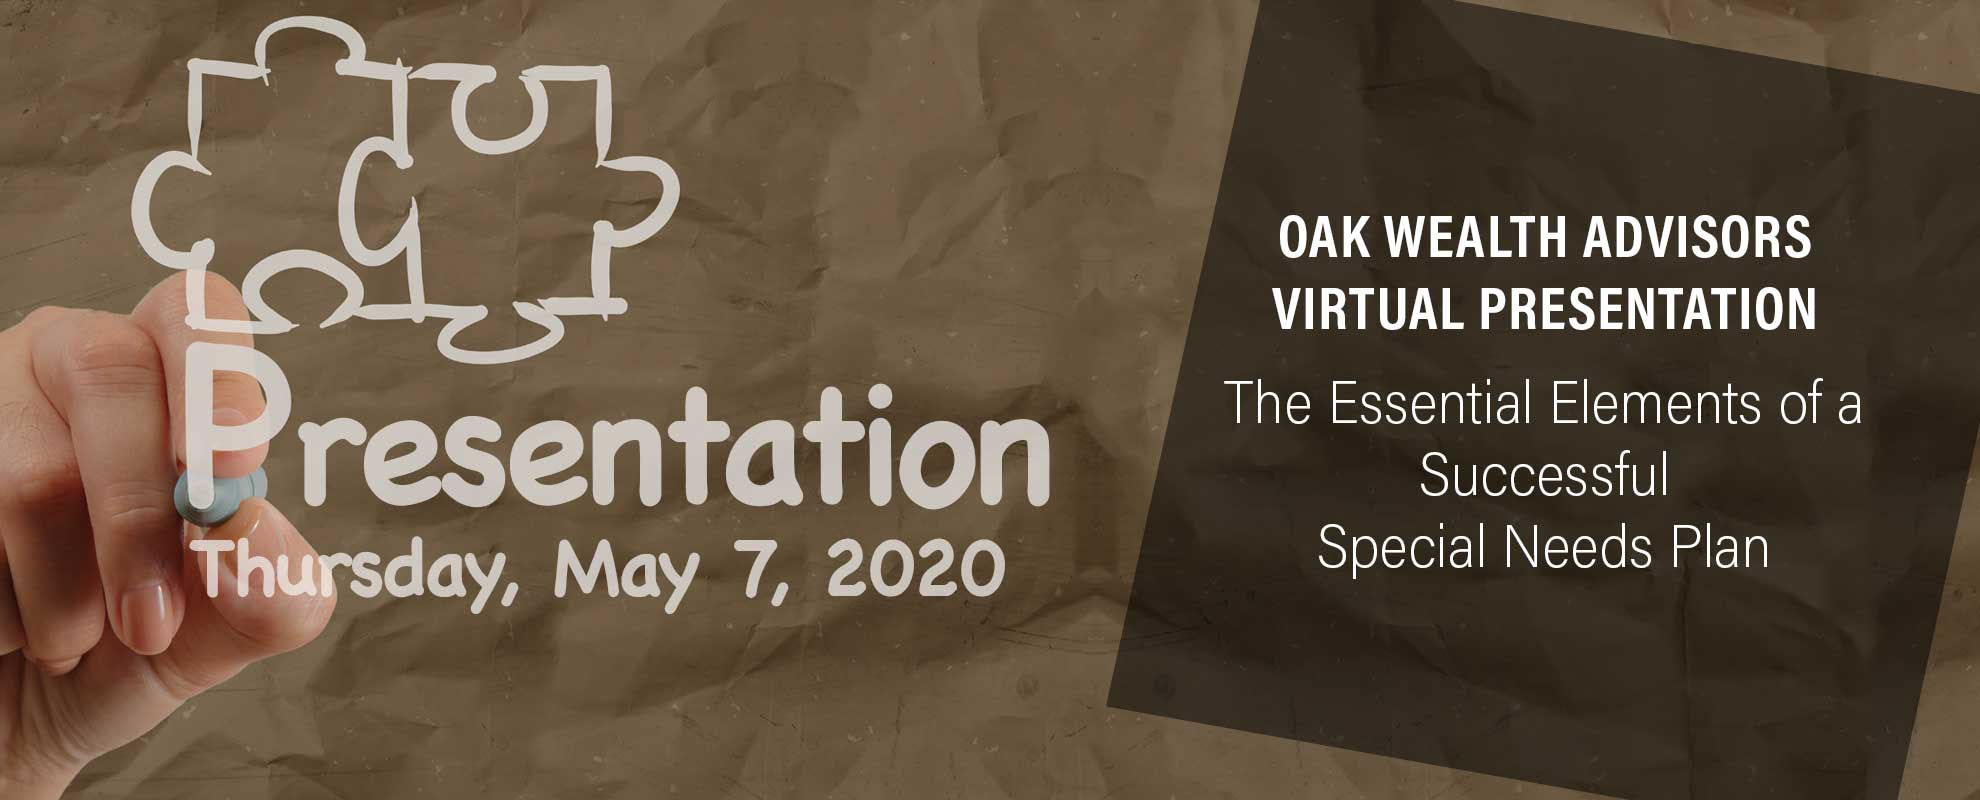 May-7-2020-virtual-presentation | The Essential Elements of a Successful Special Needs Plan